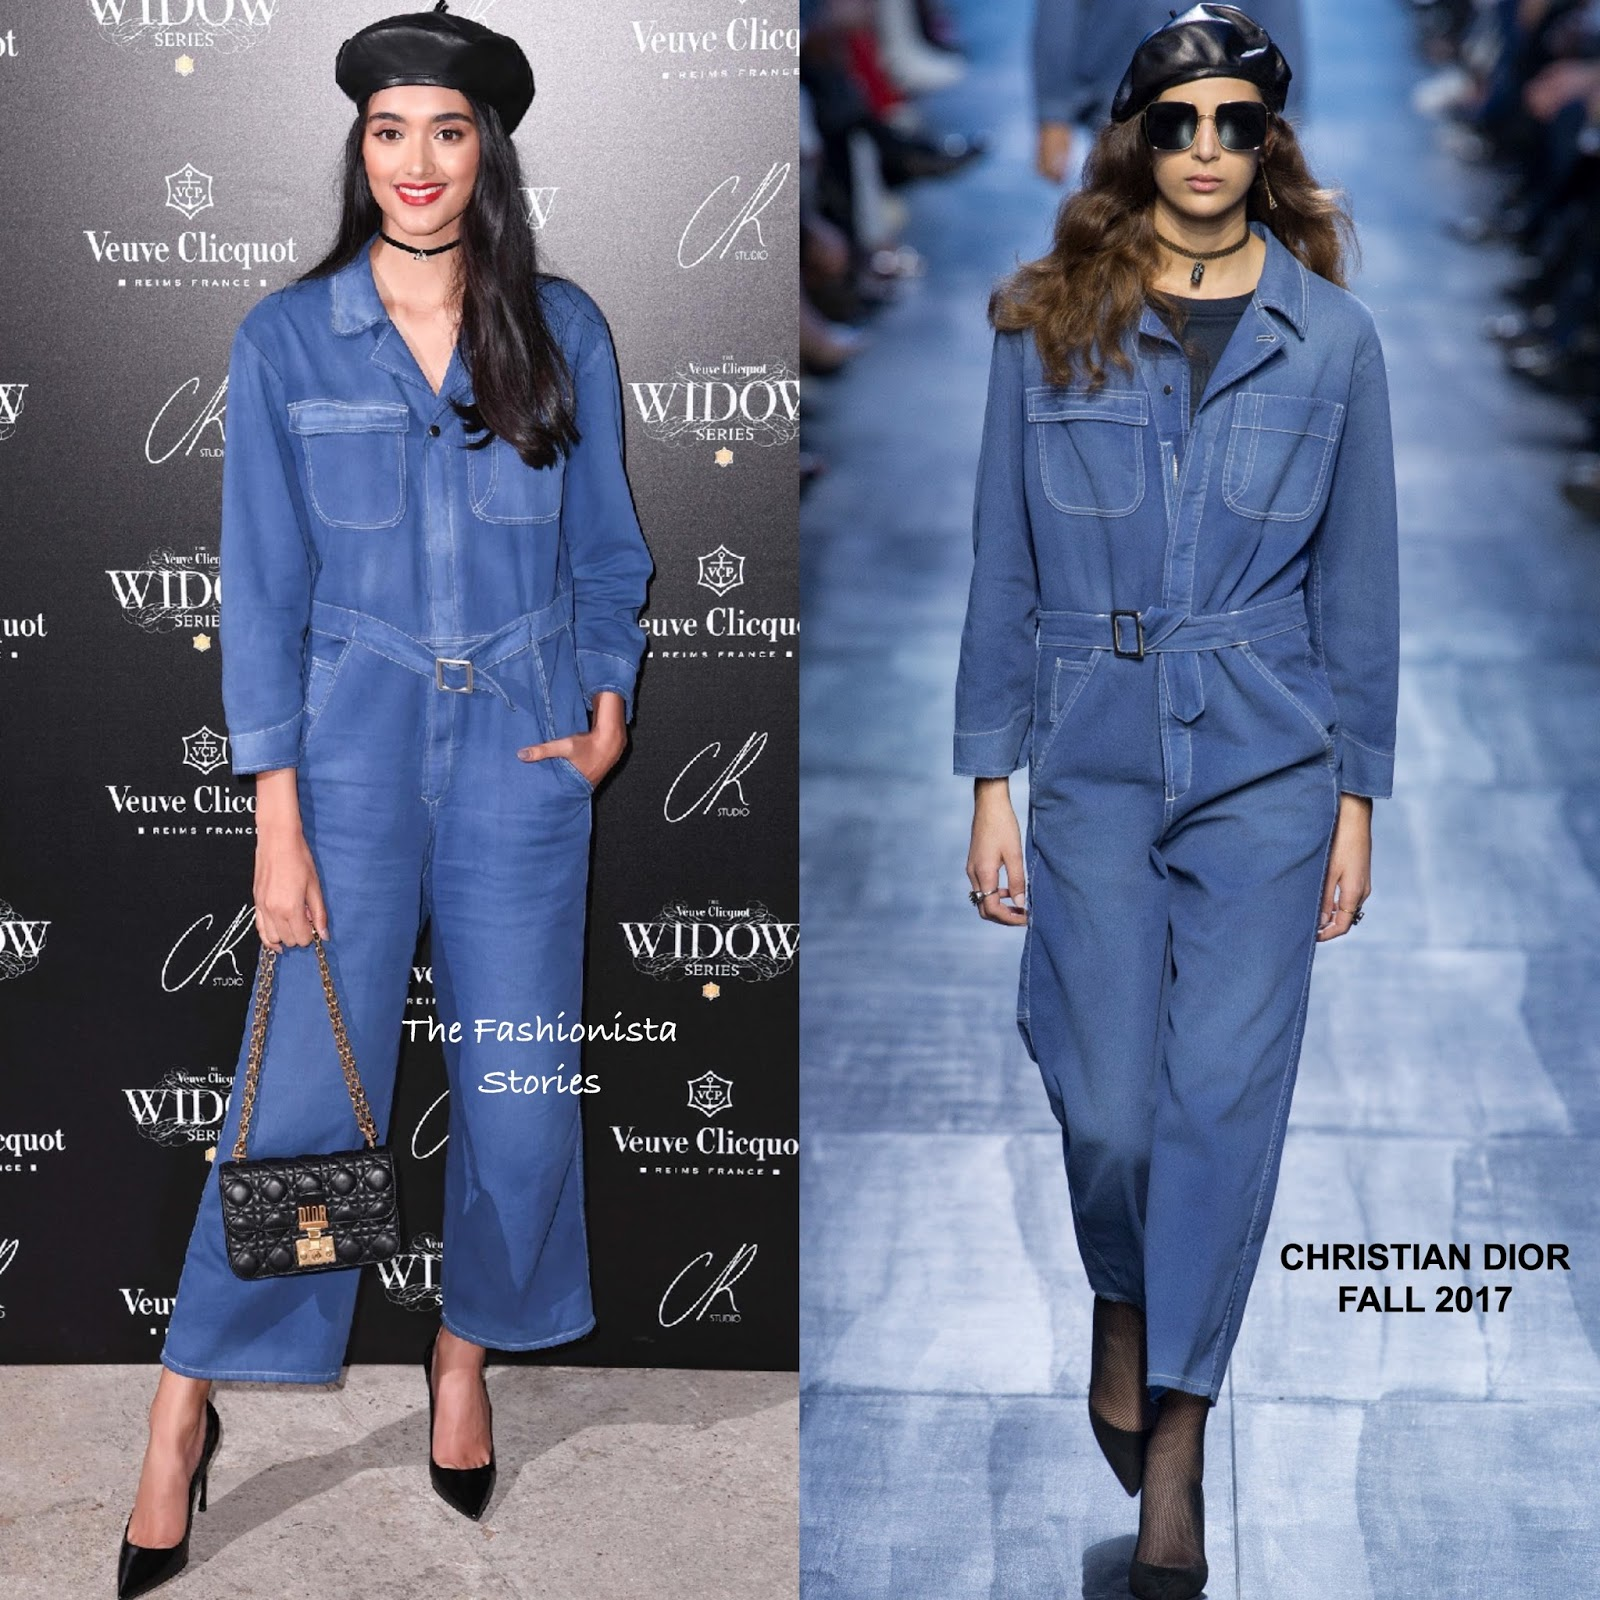 598da0f72aa1 Neelam Gill in Christian Dior at the Veuve Clicqout Widow Series Party